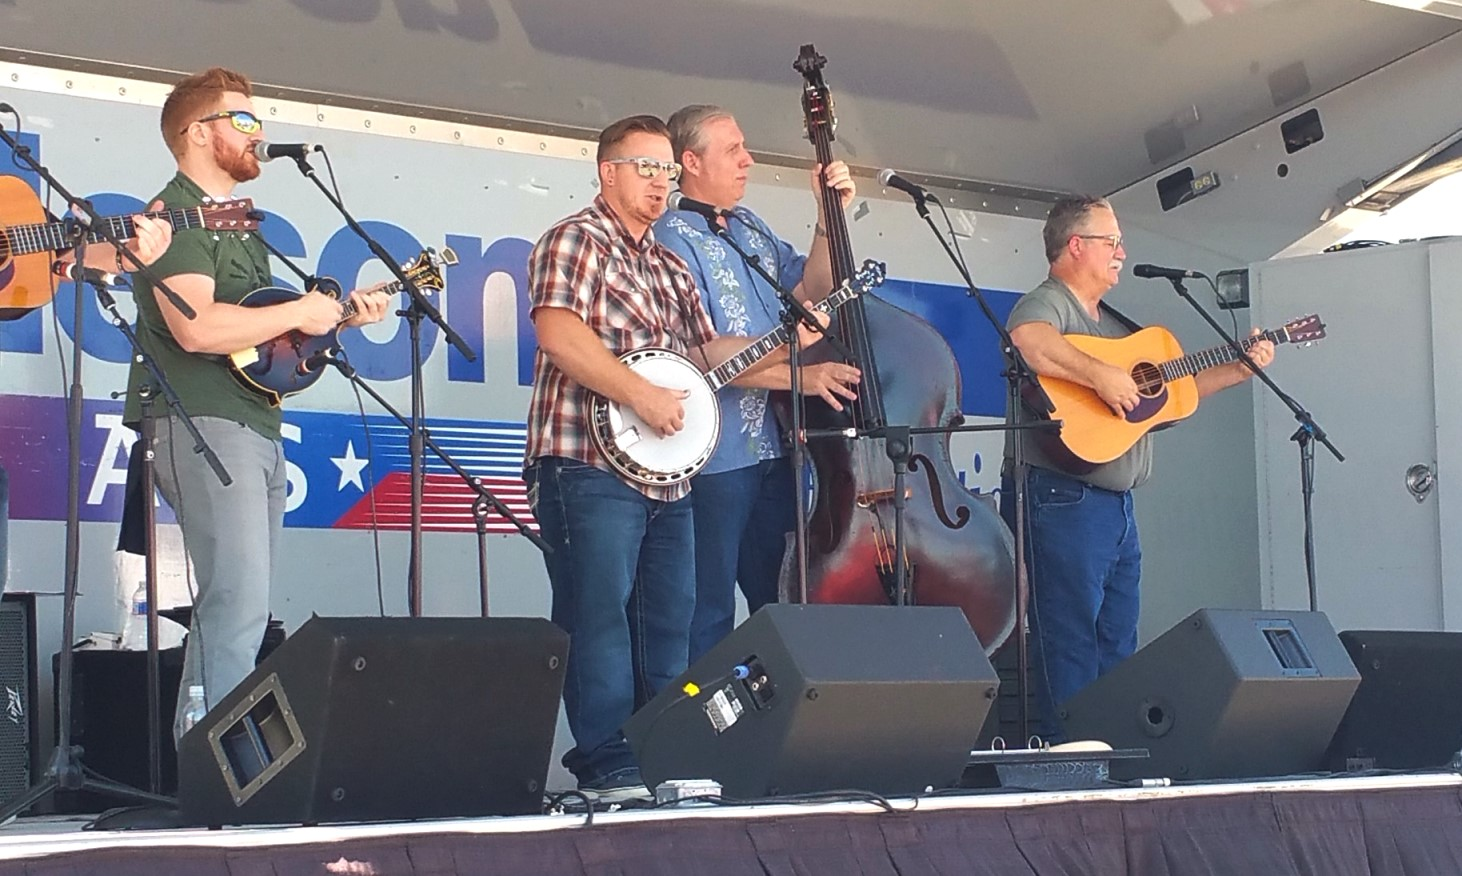 The Herrins at Bluegrass in Burleson 10-8-2016. Photo by Michael Johnson.